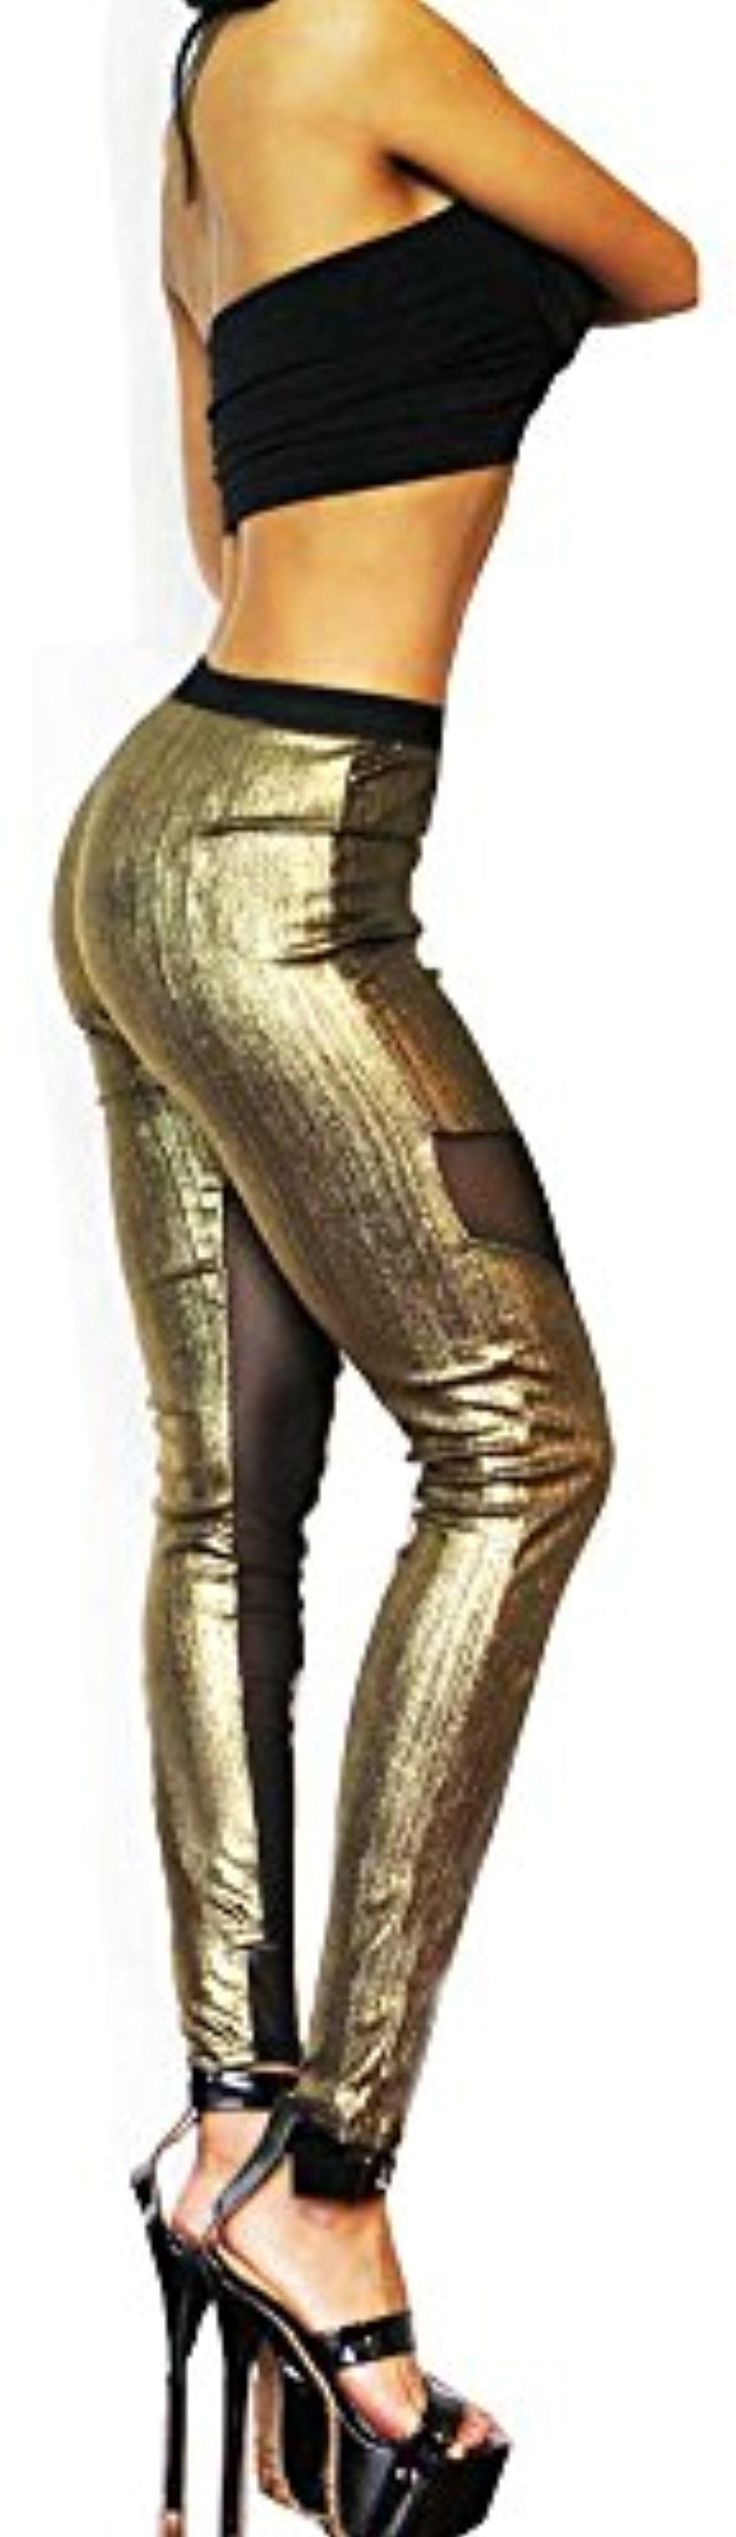 Shiny Gold Silver Black Mesh Transparent Leggings Tights (One Size (S/M), Gold) - Brought to you by Avarsha.com